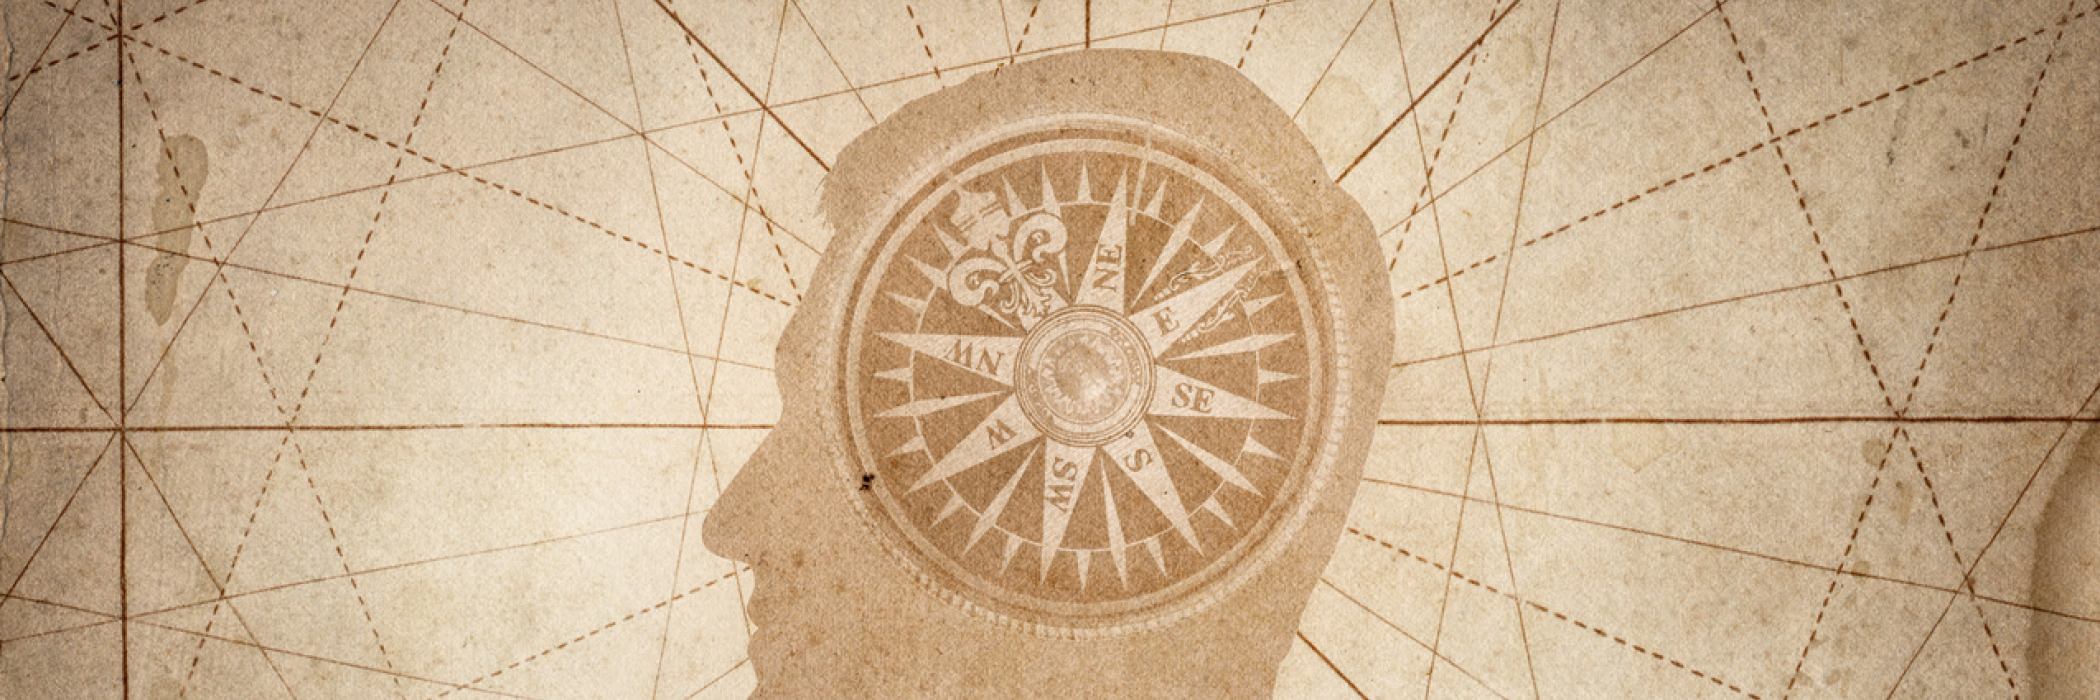 Better perception: A human head with compass